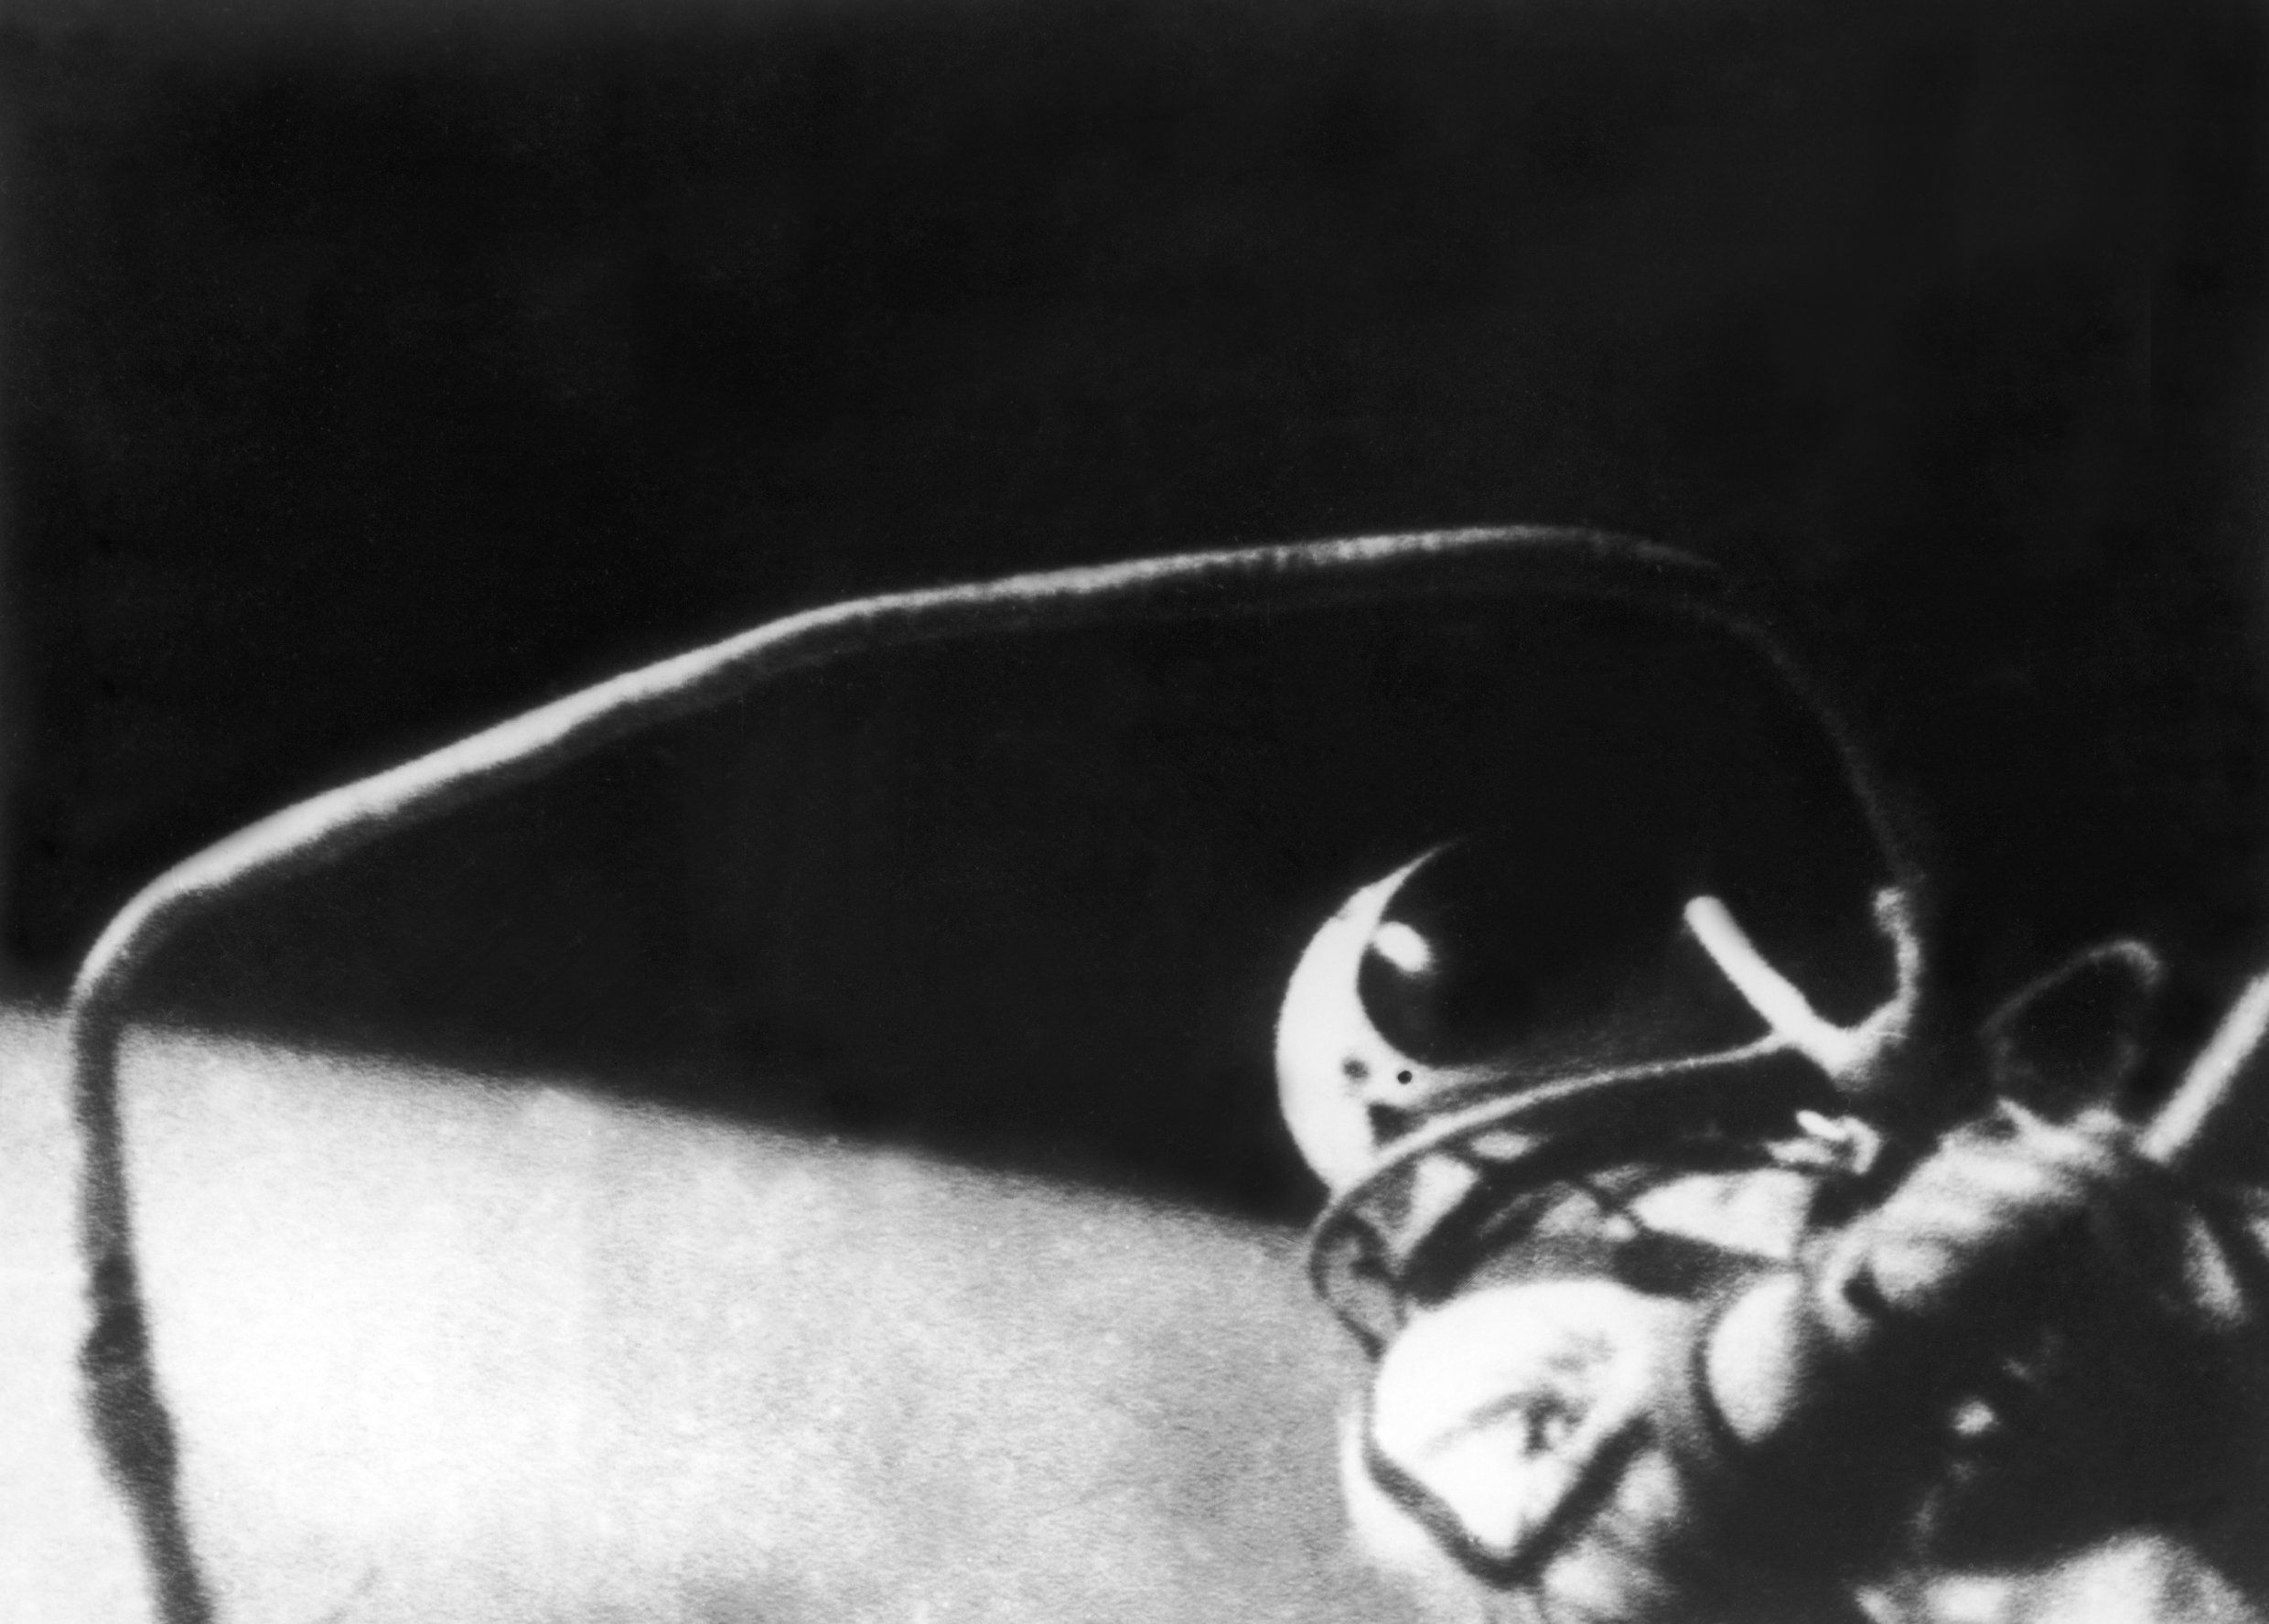 Alexei Leonov, the First Man to Walk In Space, Has Died